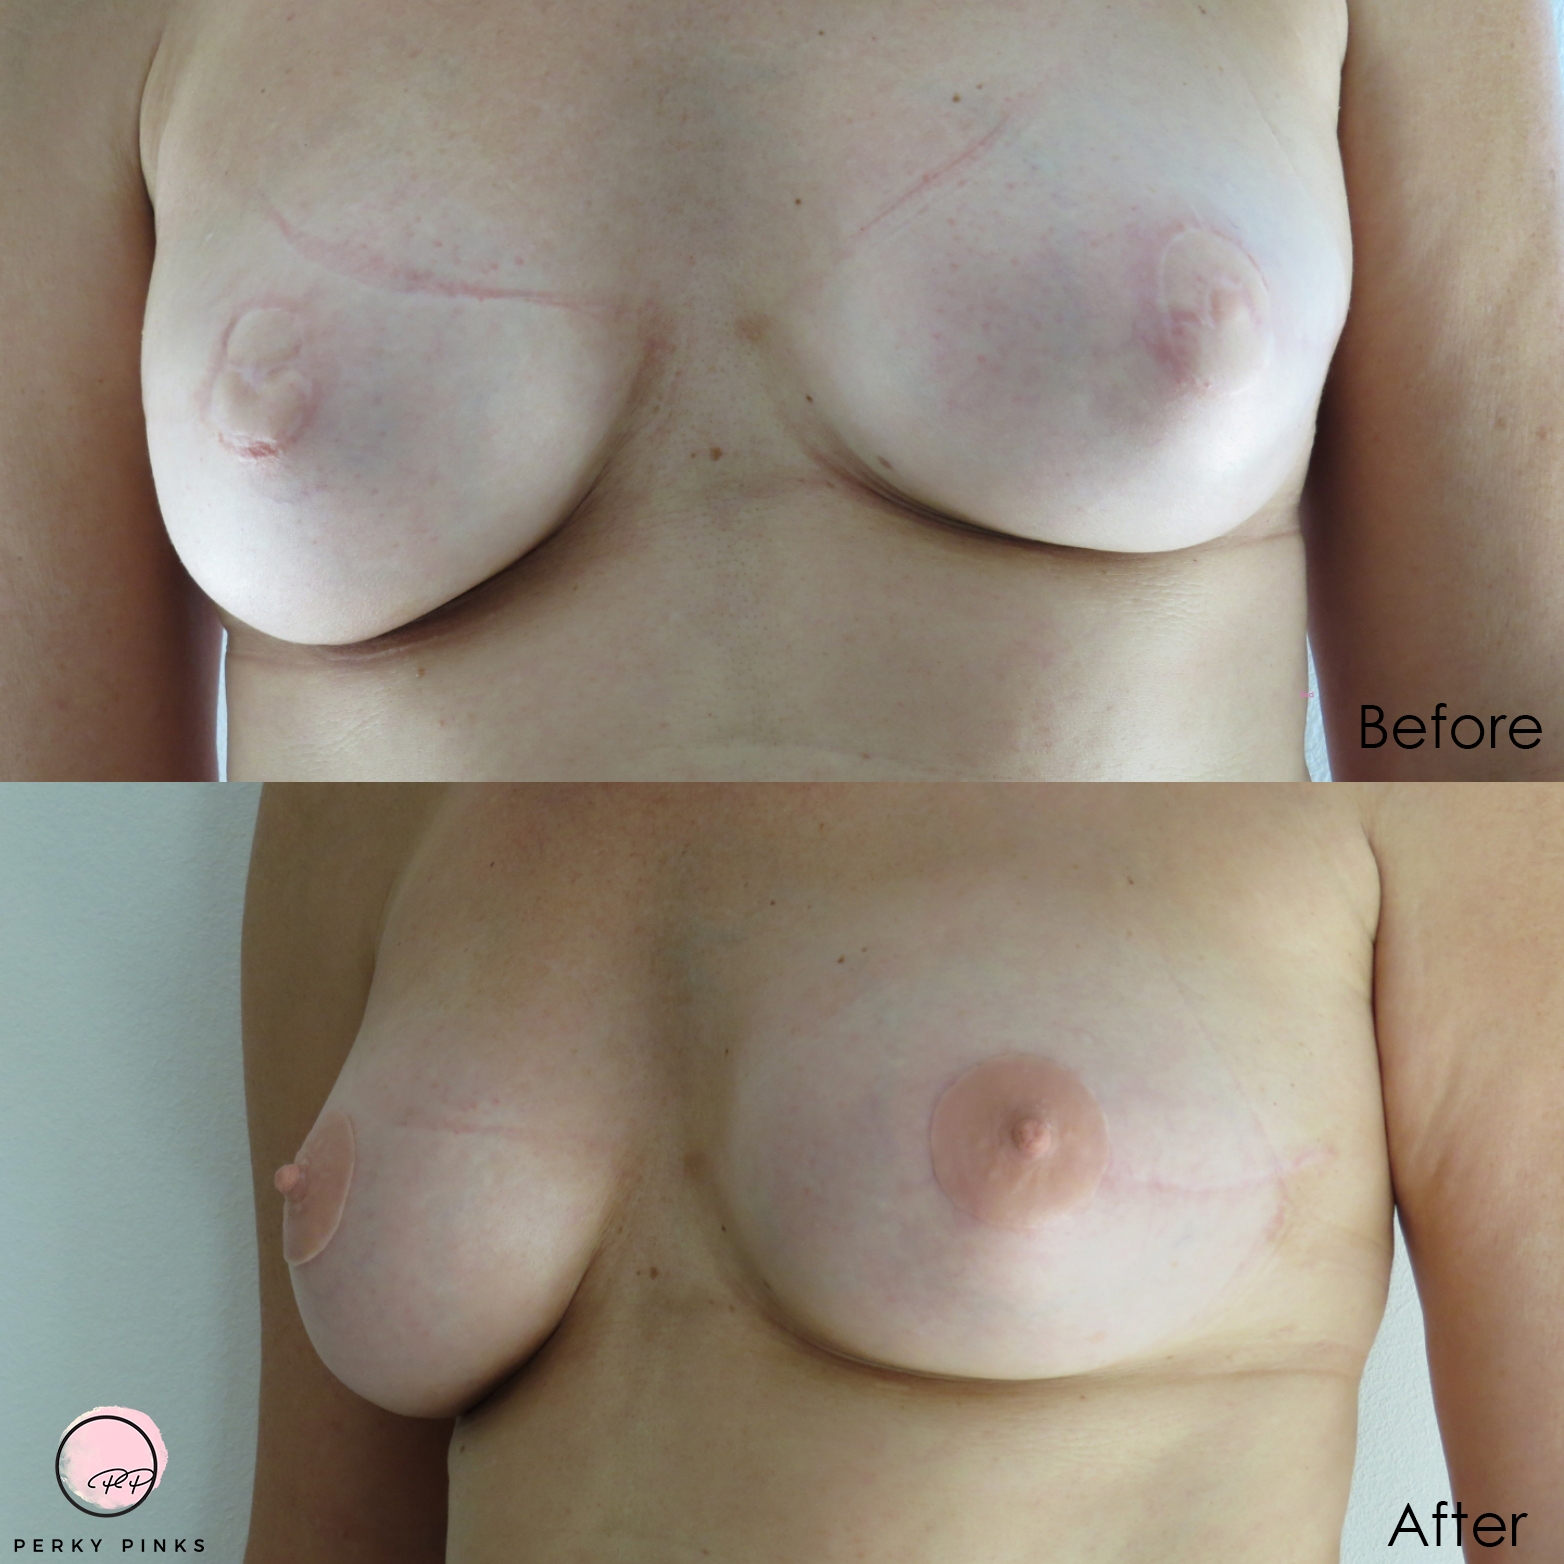 Breast cancer survivor's reconstructed breasts before and after Perky Pink silicone adhesive nipple prosthetics